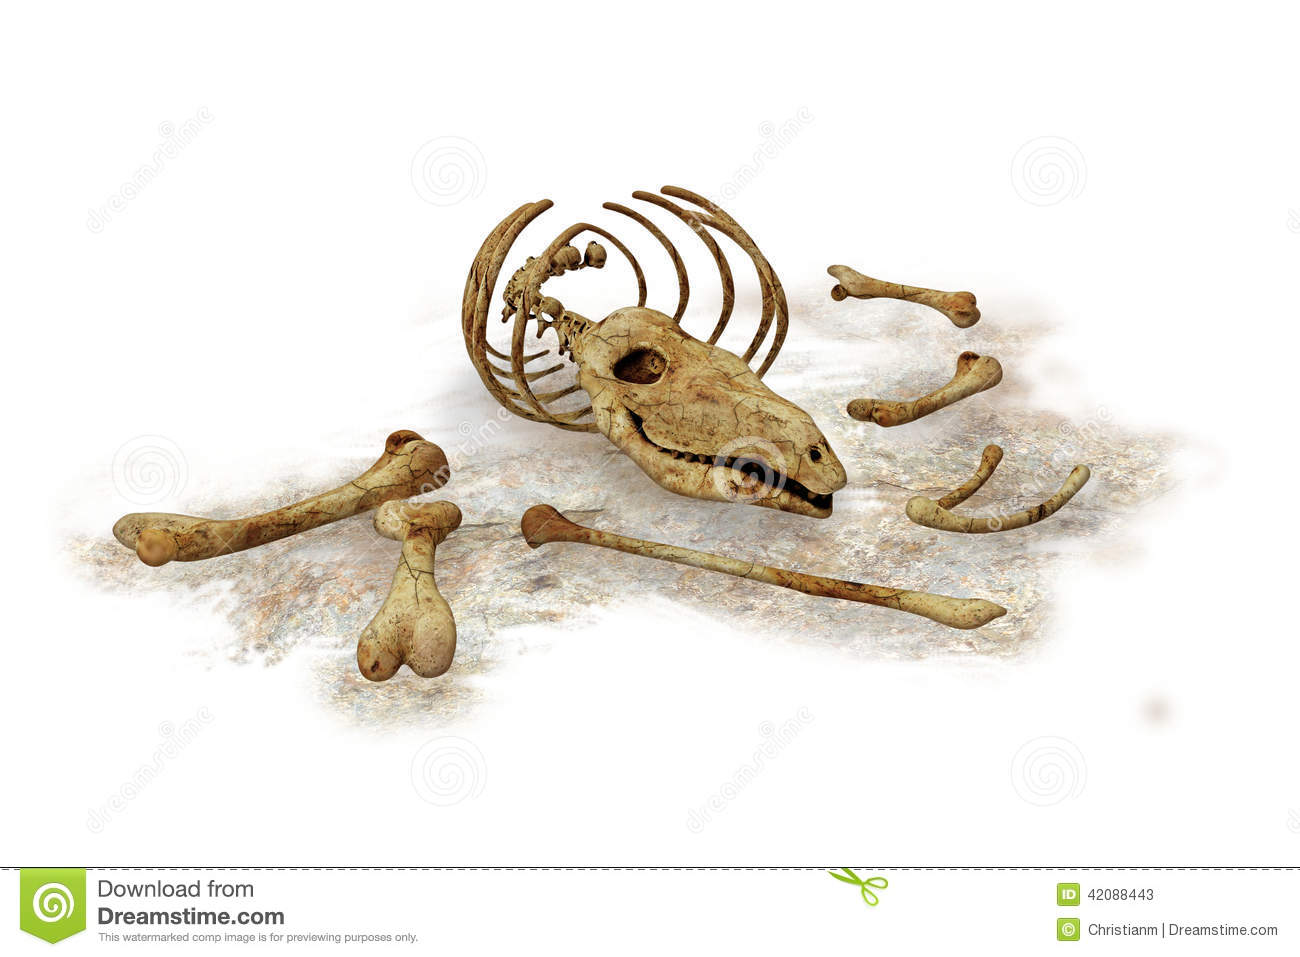 Jawbone stock illustrations 168 jawbone stock illustrations the bones of a dead or extinct animal on white background stock photos biocorpaavc Image collections